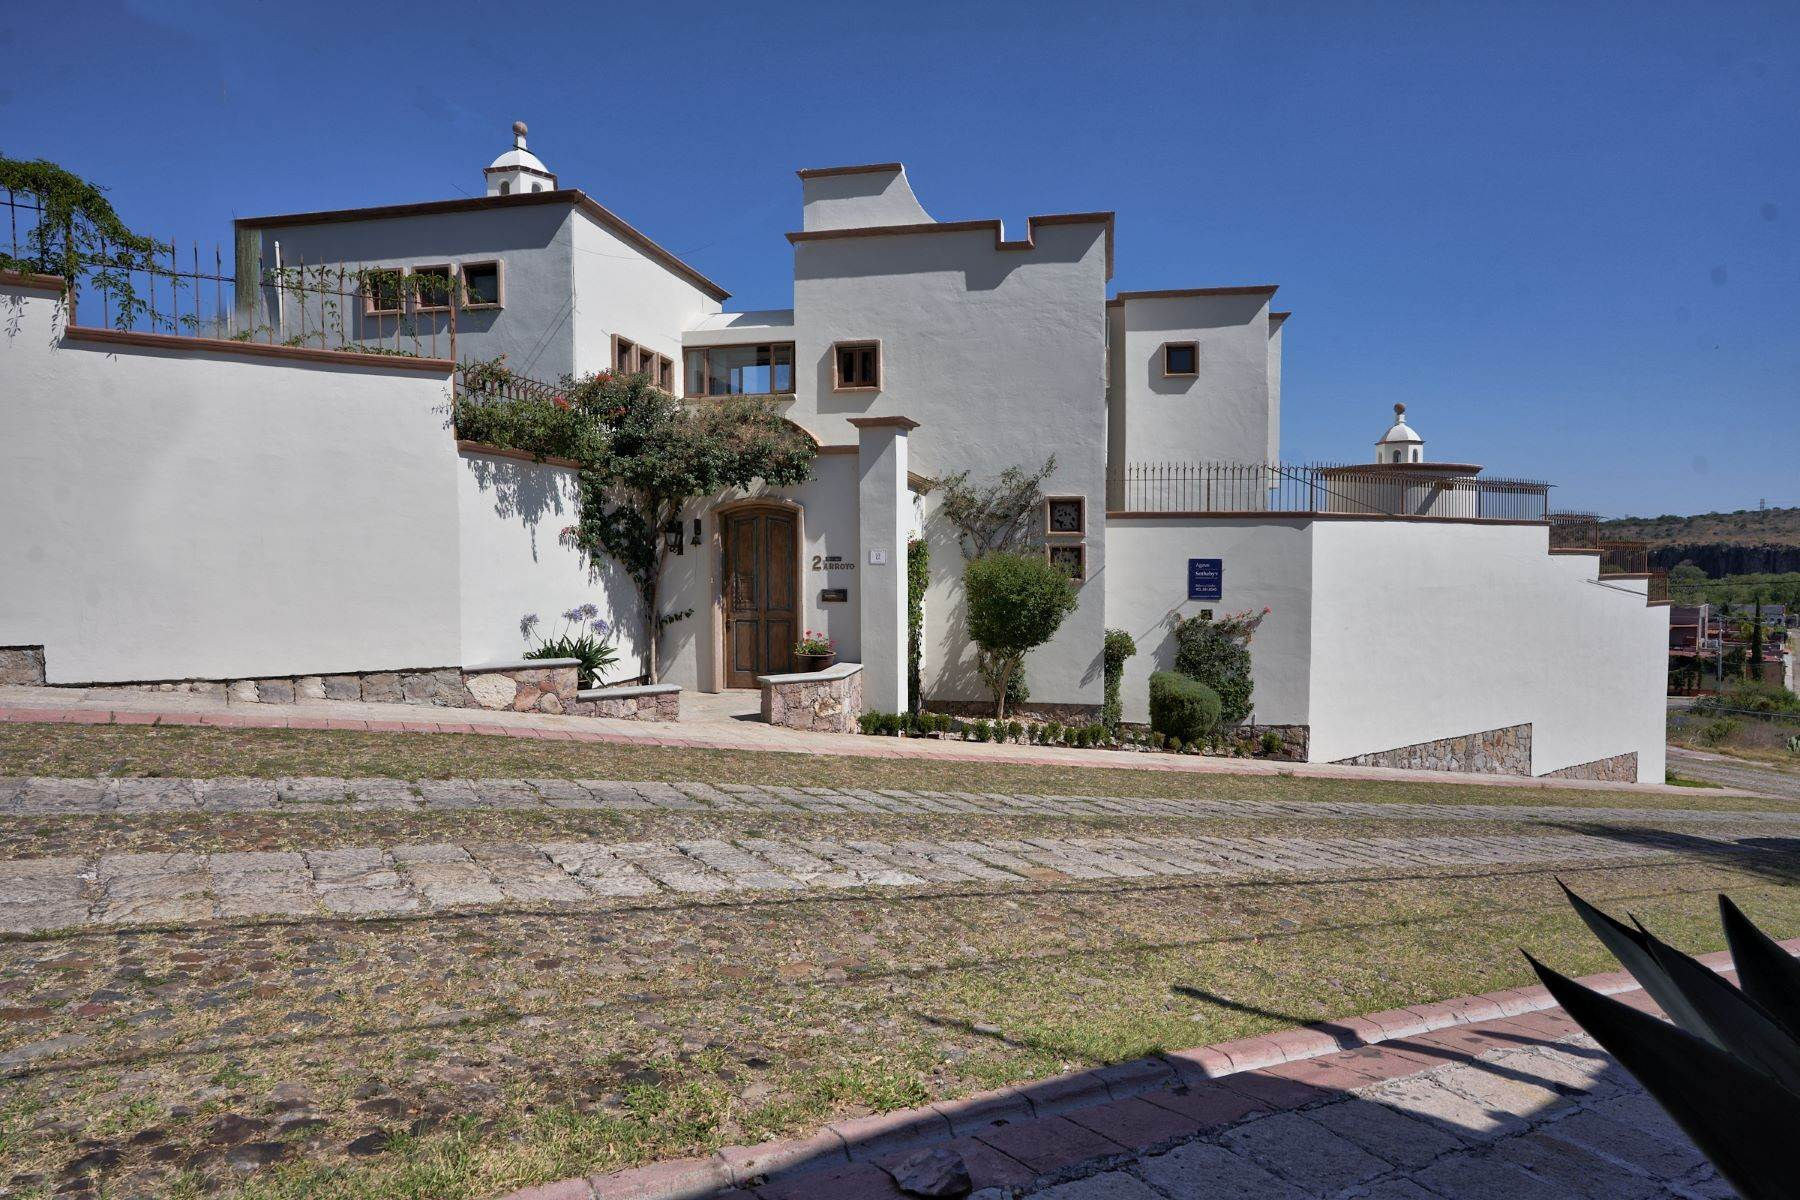 Single Family Homes for Sale at Casa Sandra Privada del Arroyo 2 San Miguel De Allende, Guanajuato 37720 Mexico